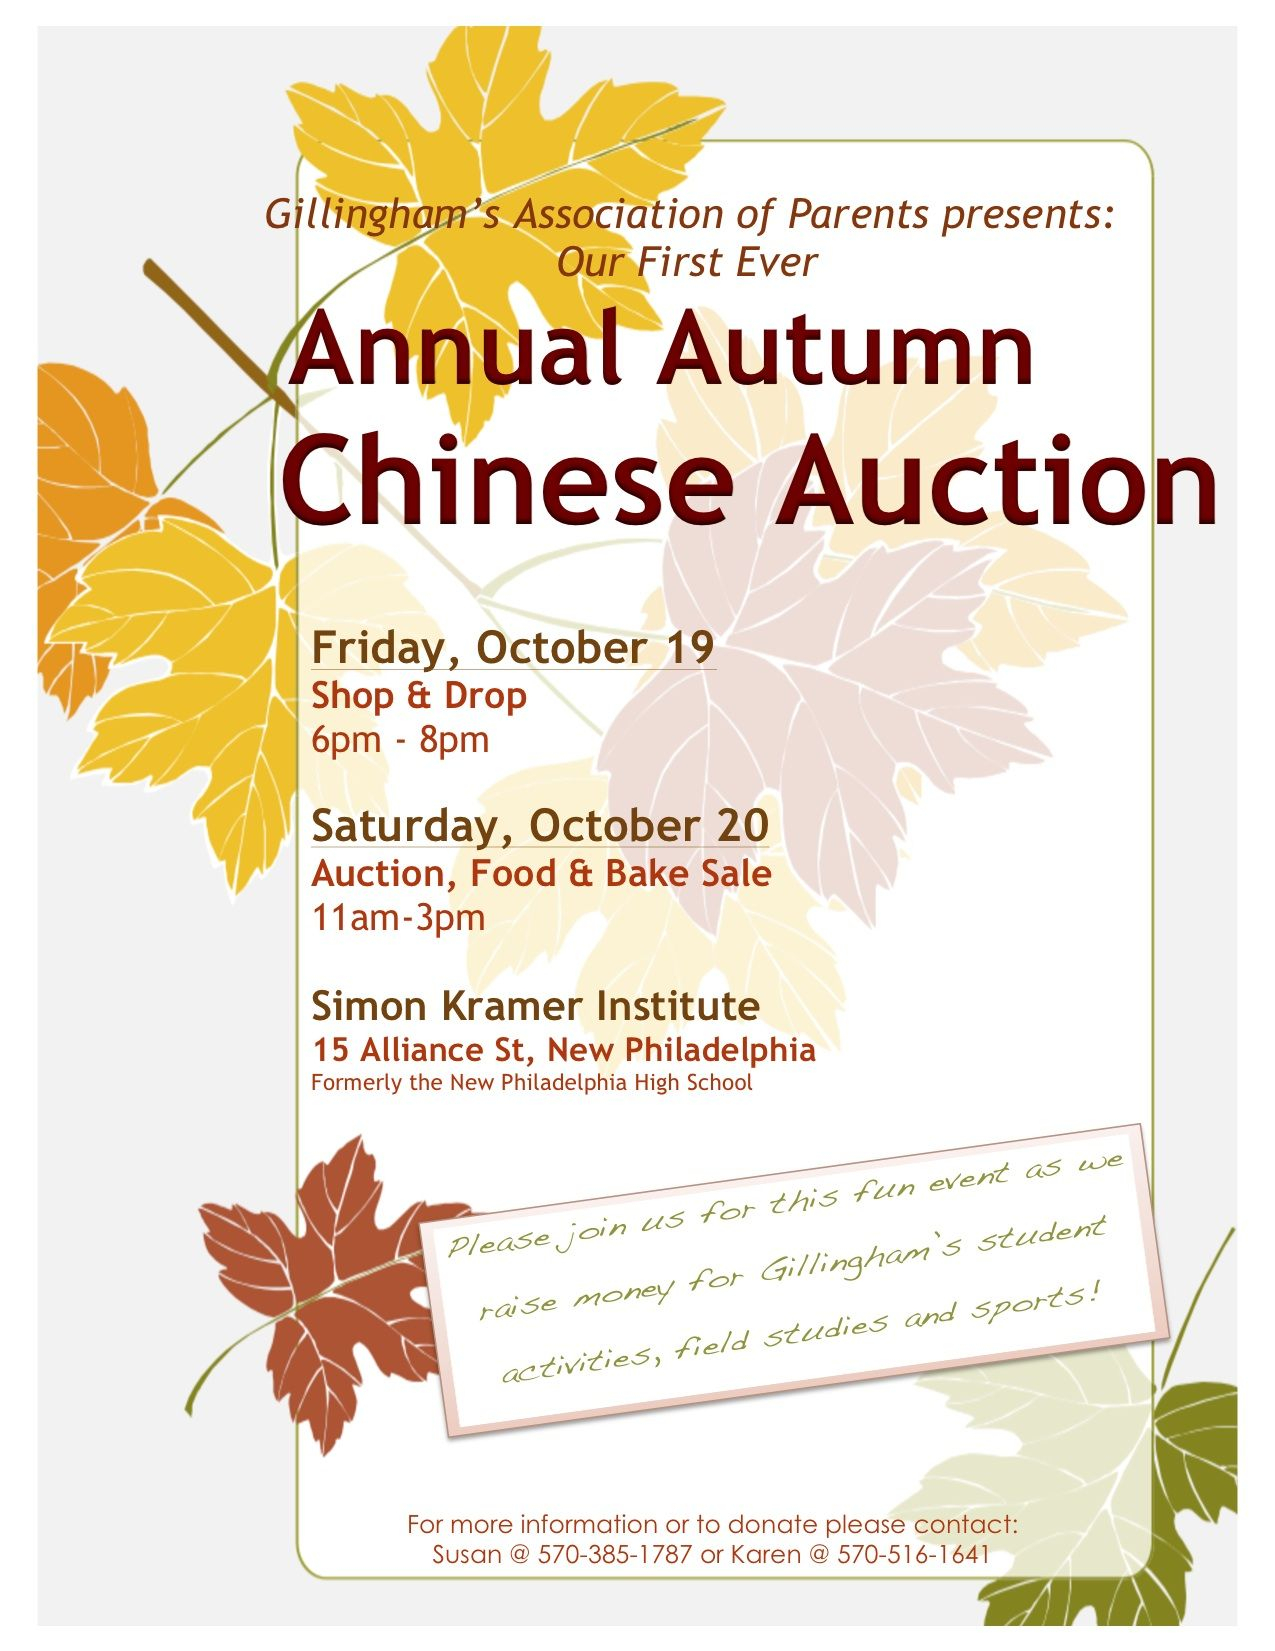 nice auction event flyer example gillingham charter school nice auction event flyer example gillingham charter school chinese auction flyer